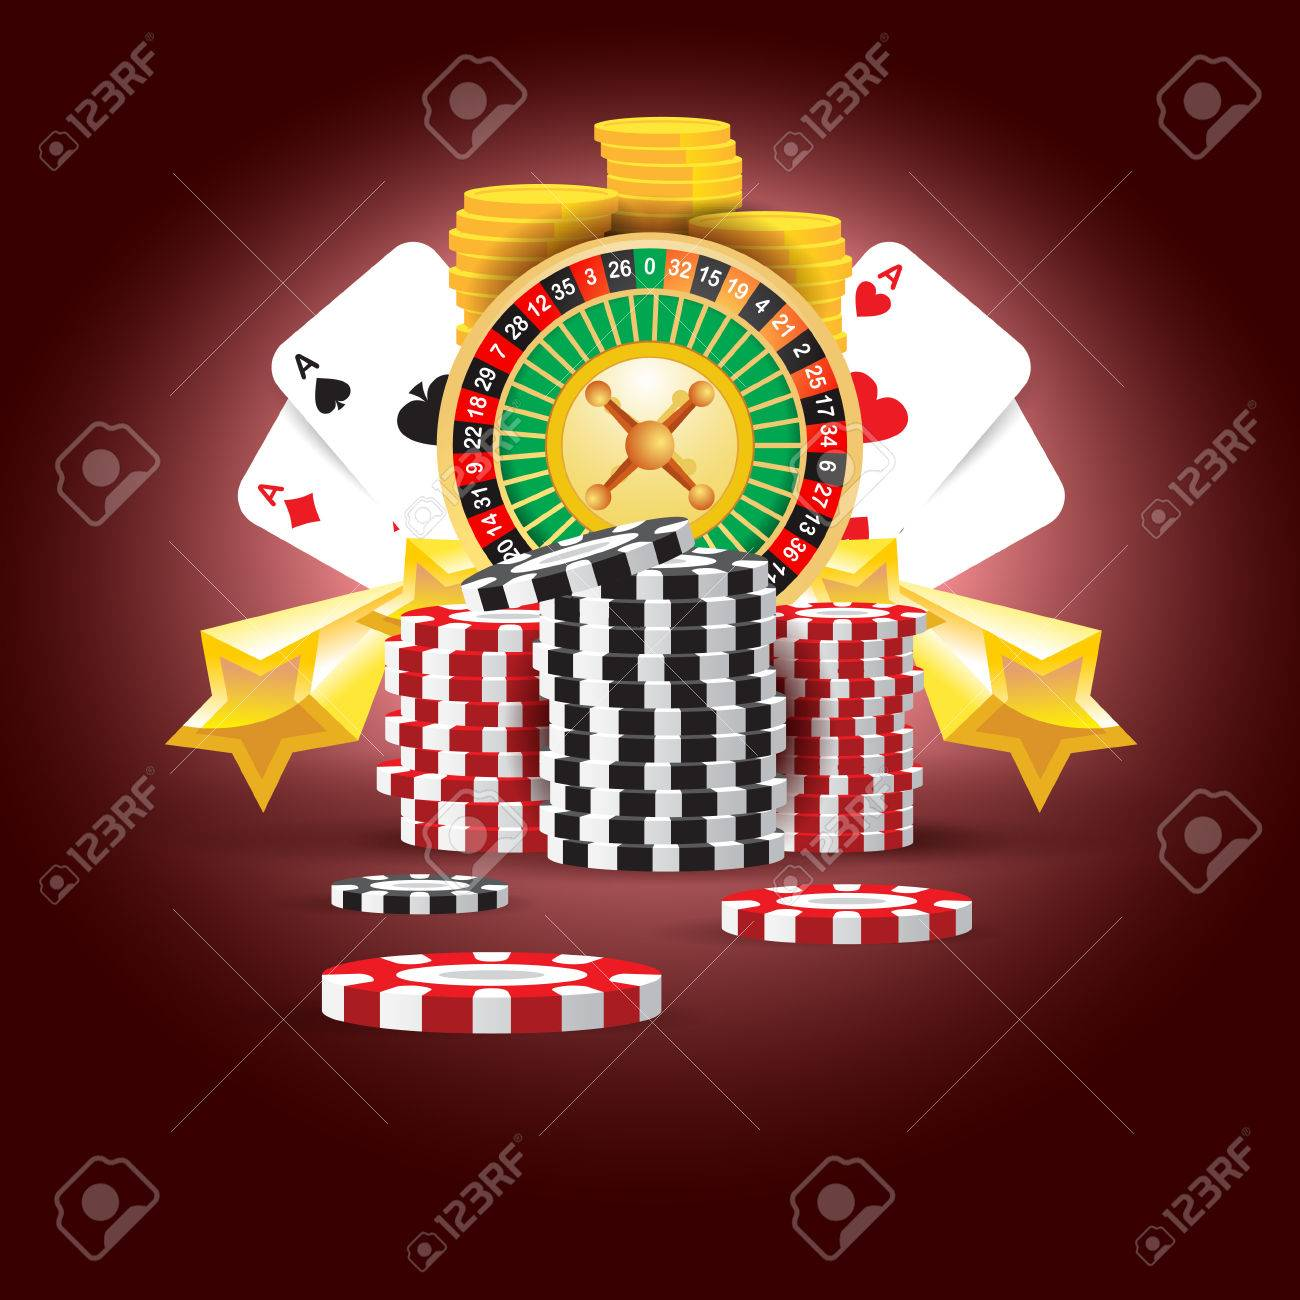 casino european roulette money cards game red black background - 55381054